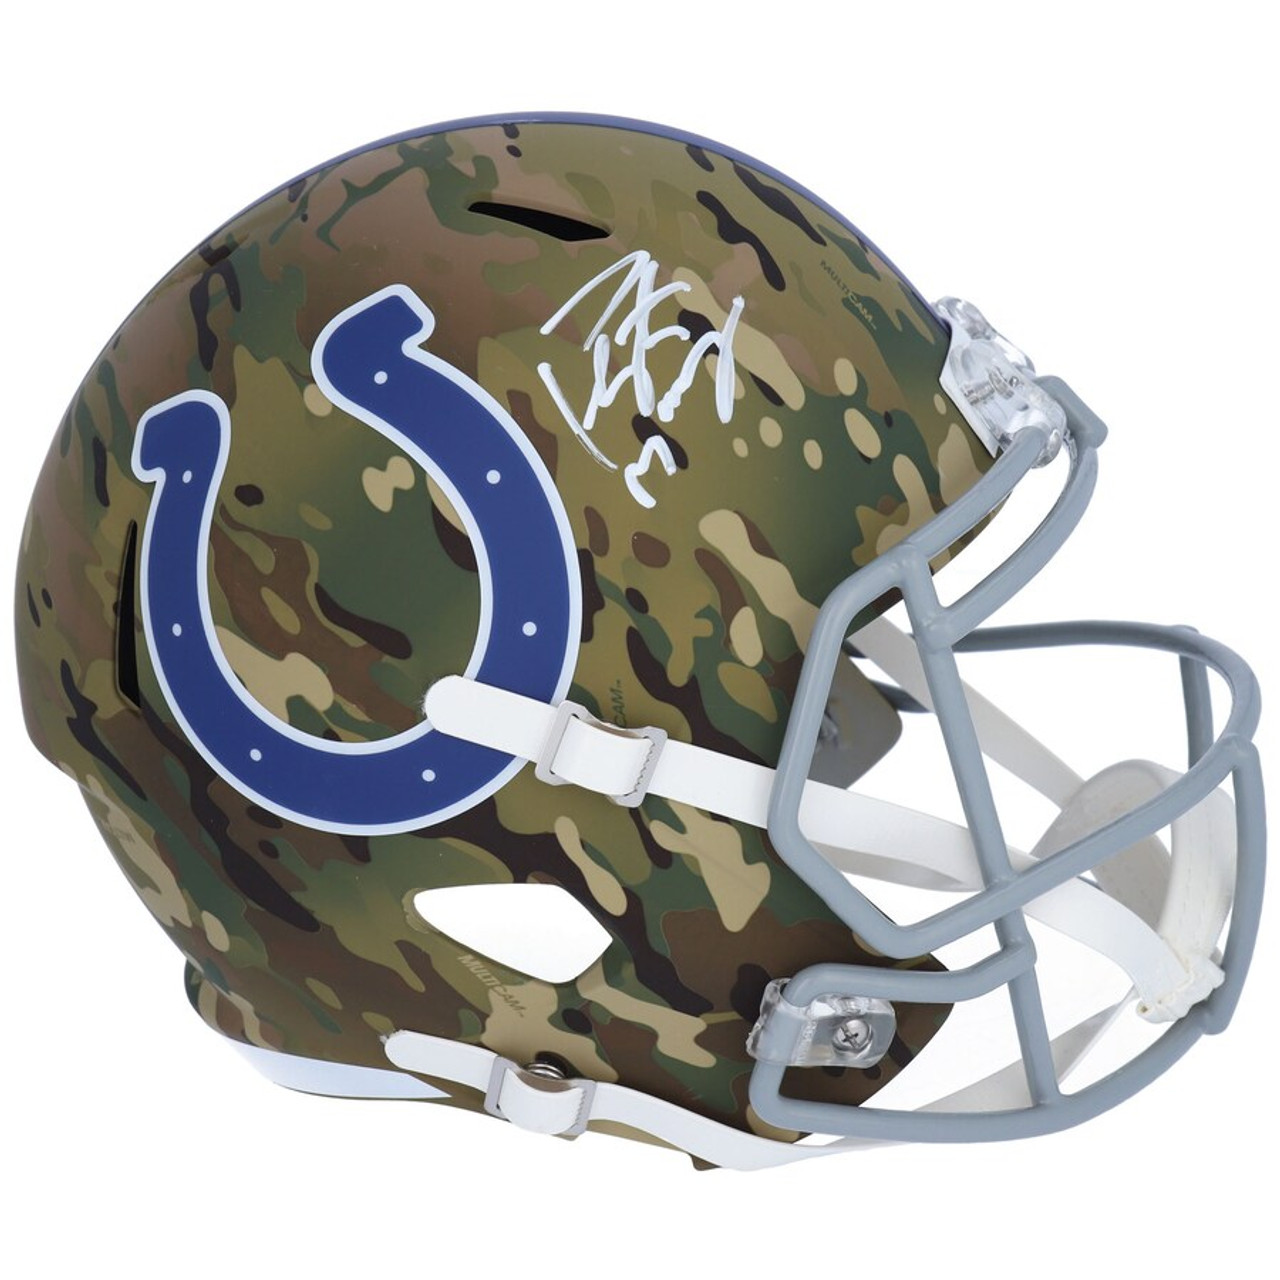 Peyton Manning Autographed Indianapolis Colts Camo Speed Full Size Helmet Fanatics Game Day Legends